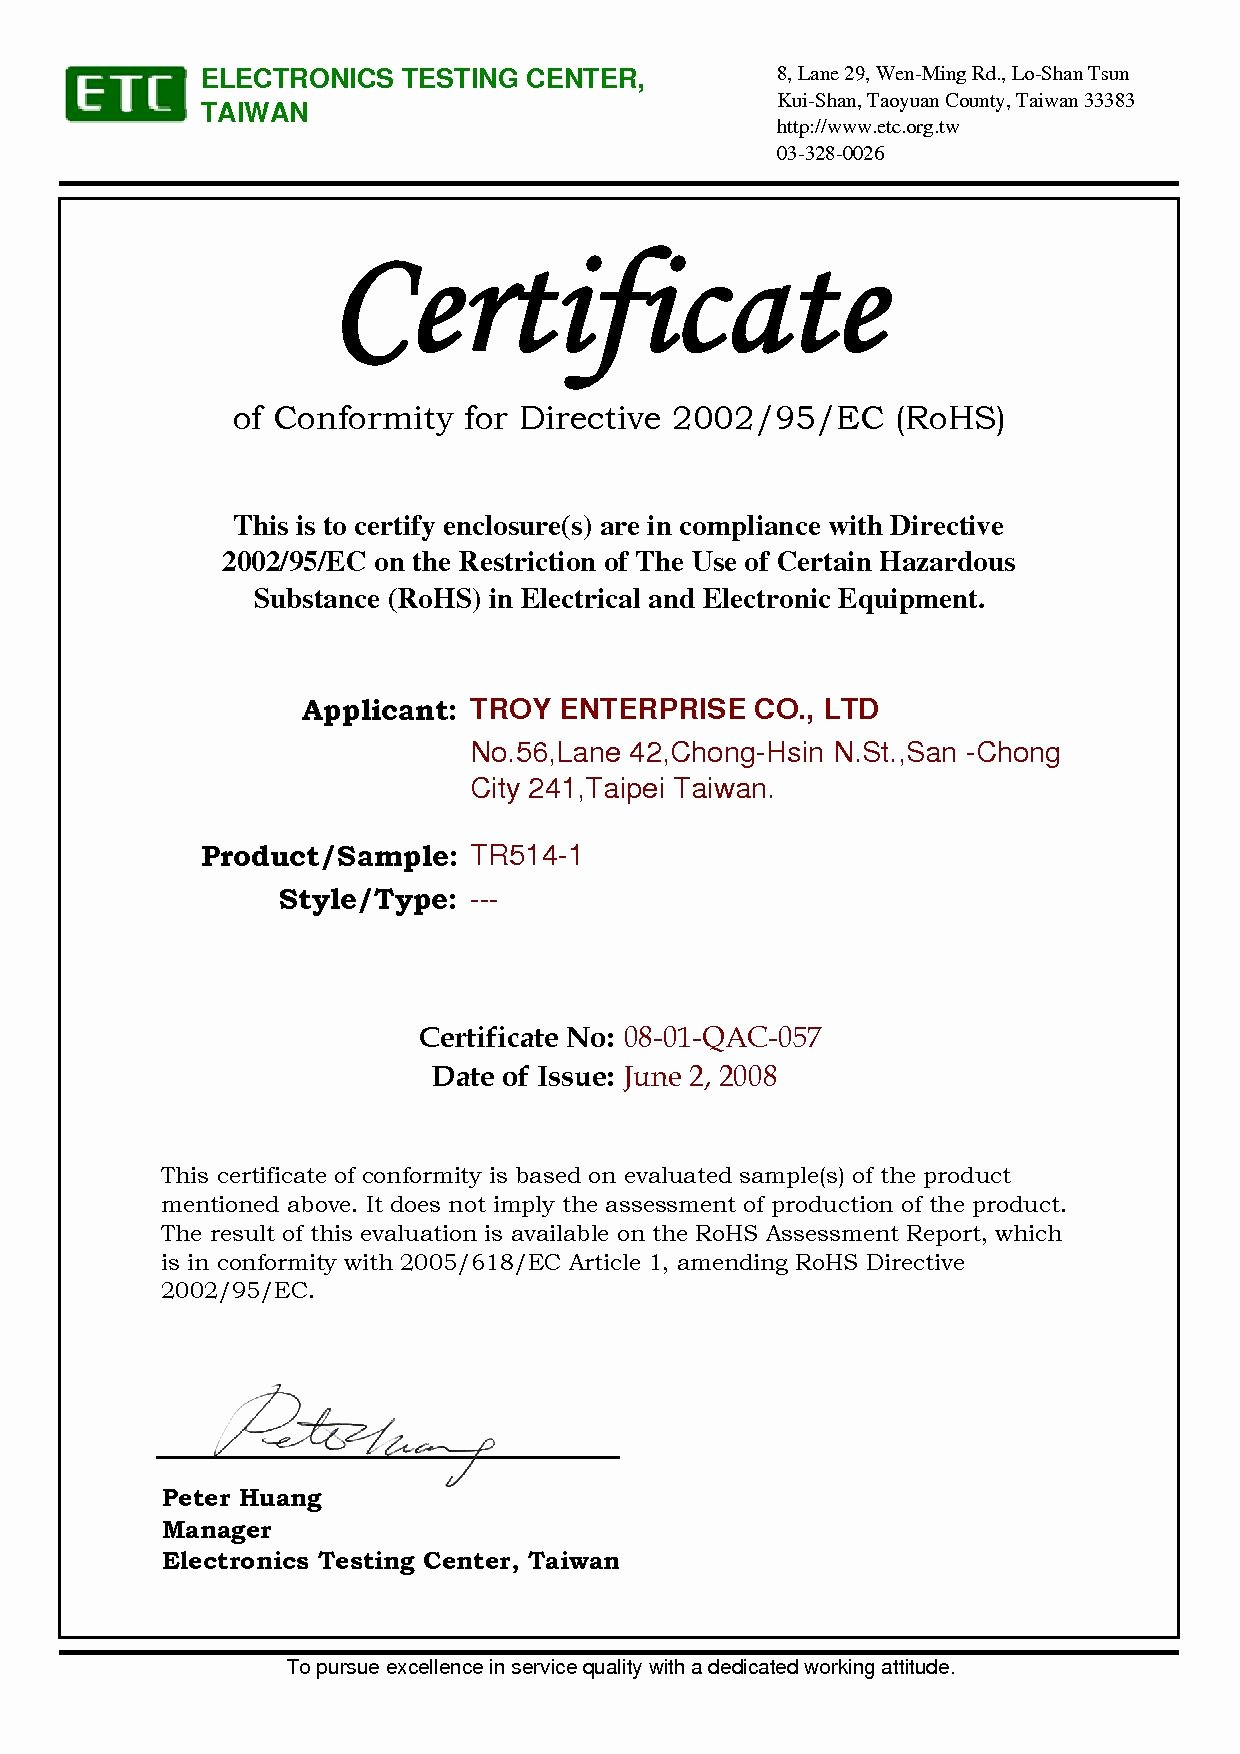 Certificate Of Compliance Template Luxury Certificate Rohs Electronics Testing Center Tr514 1